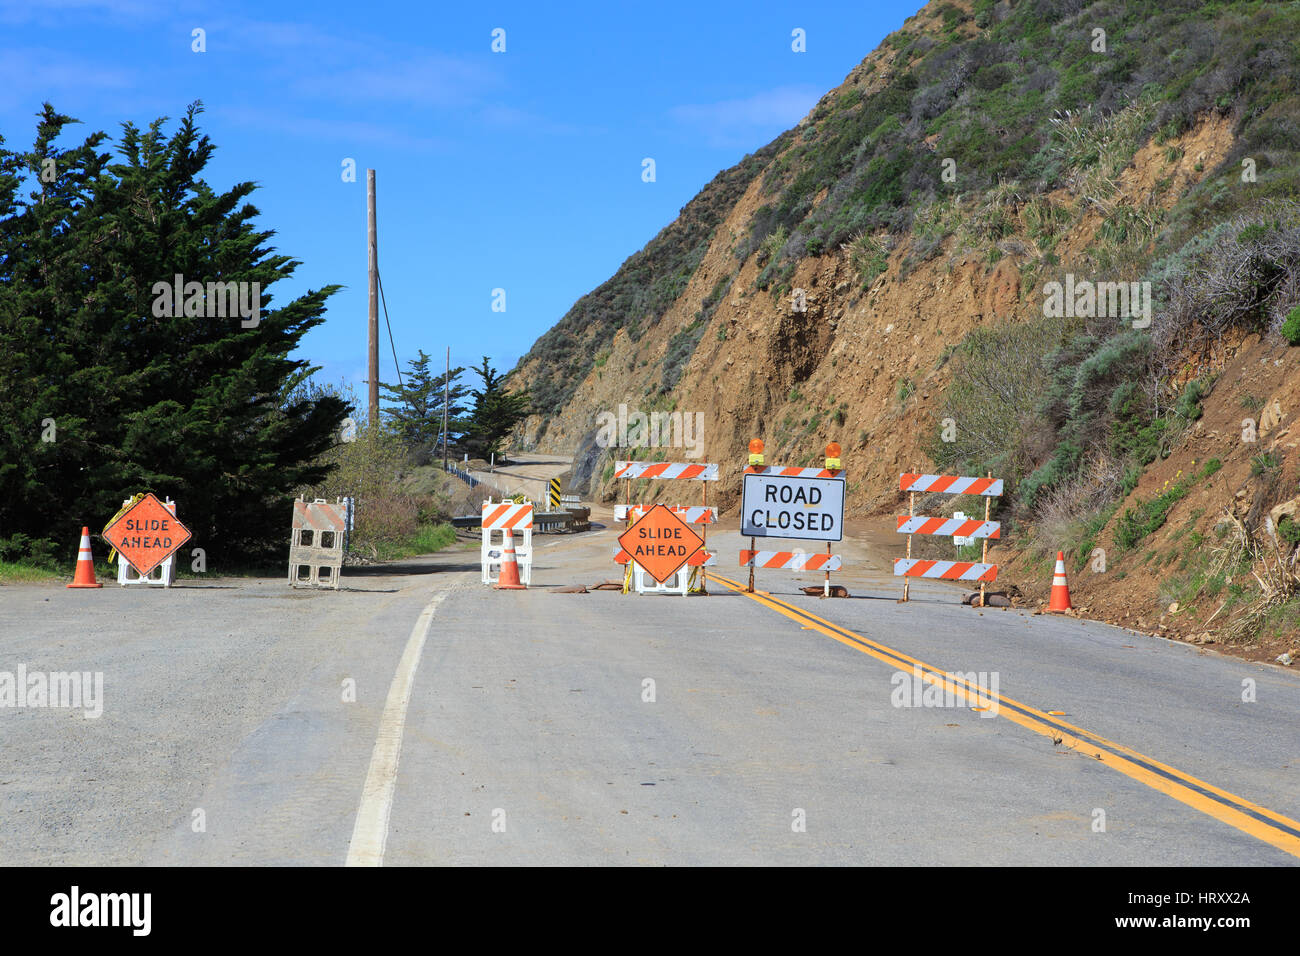 Pacific coast highway(PCH) road closed at Ragged Point .California's coastal Highway 1 is temporarily closed - Stock Image